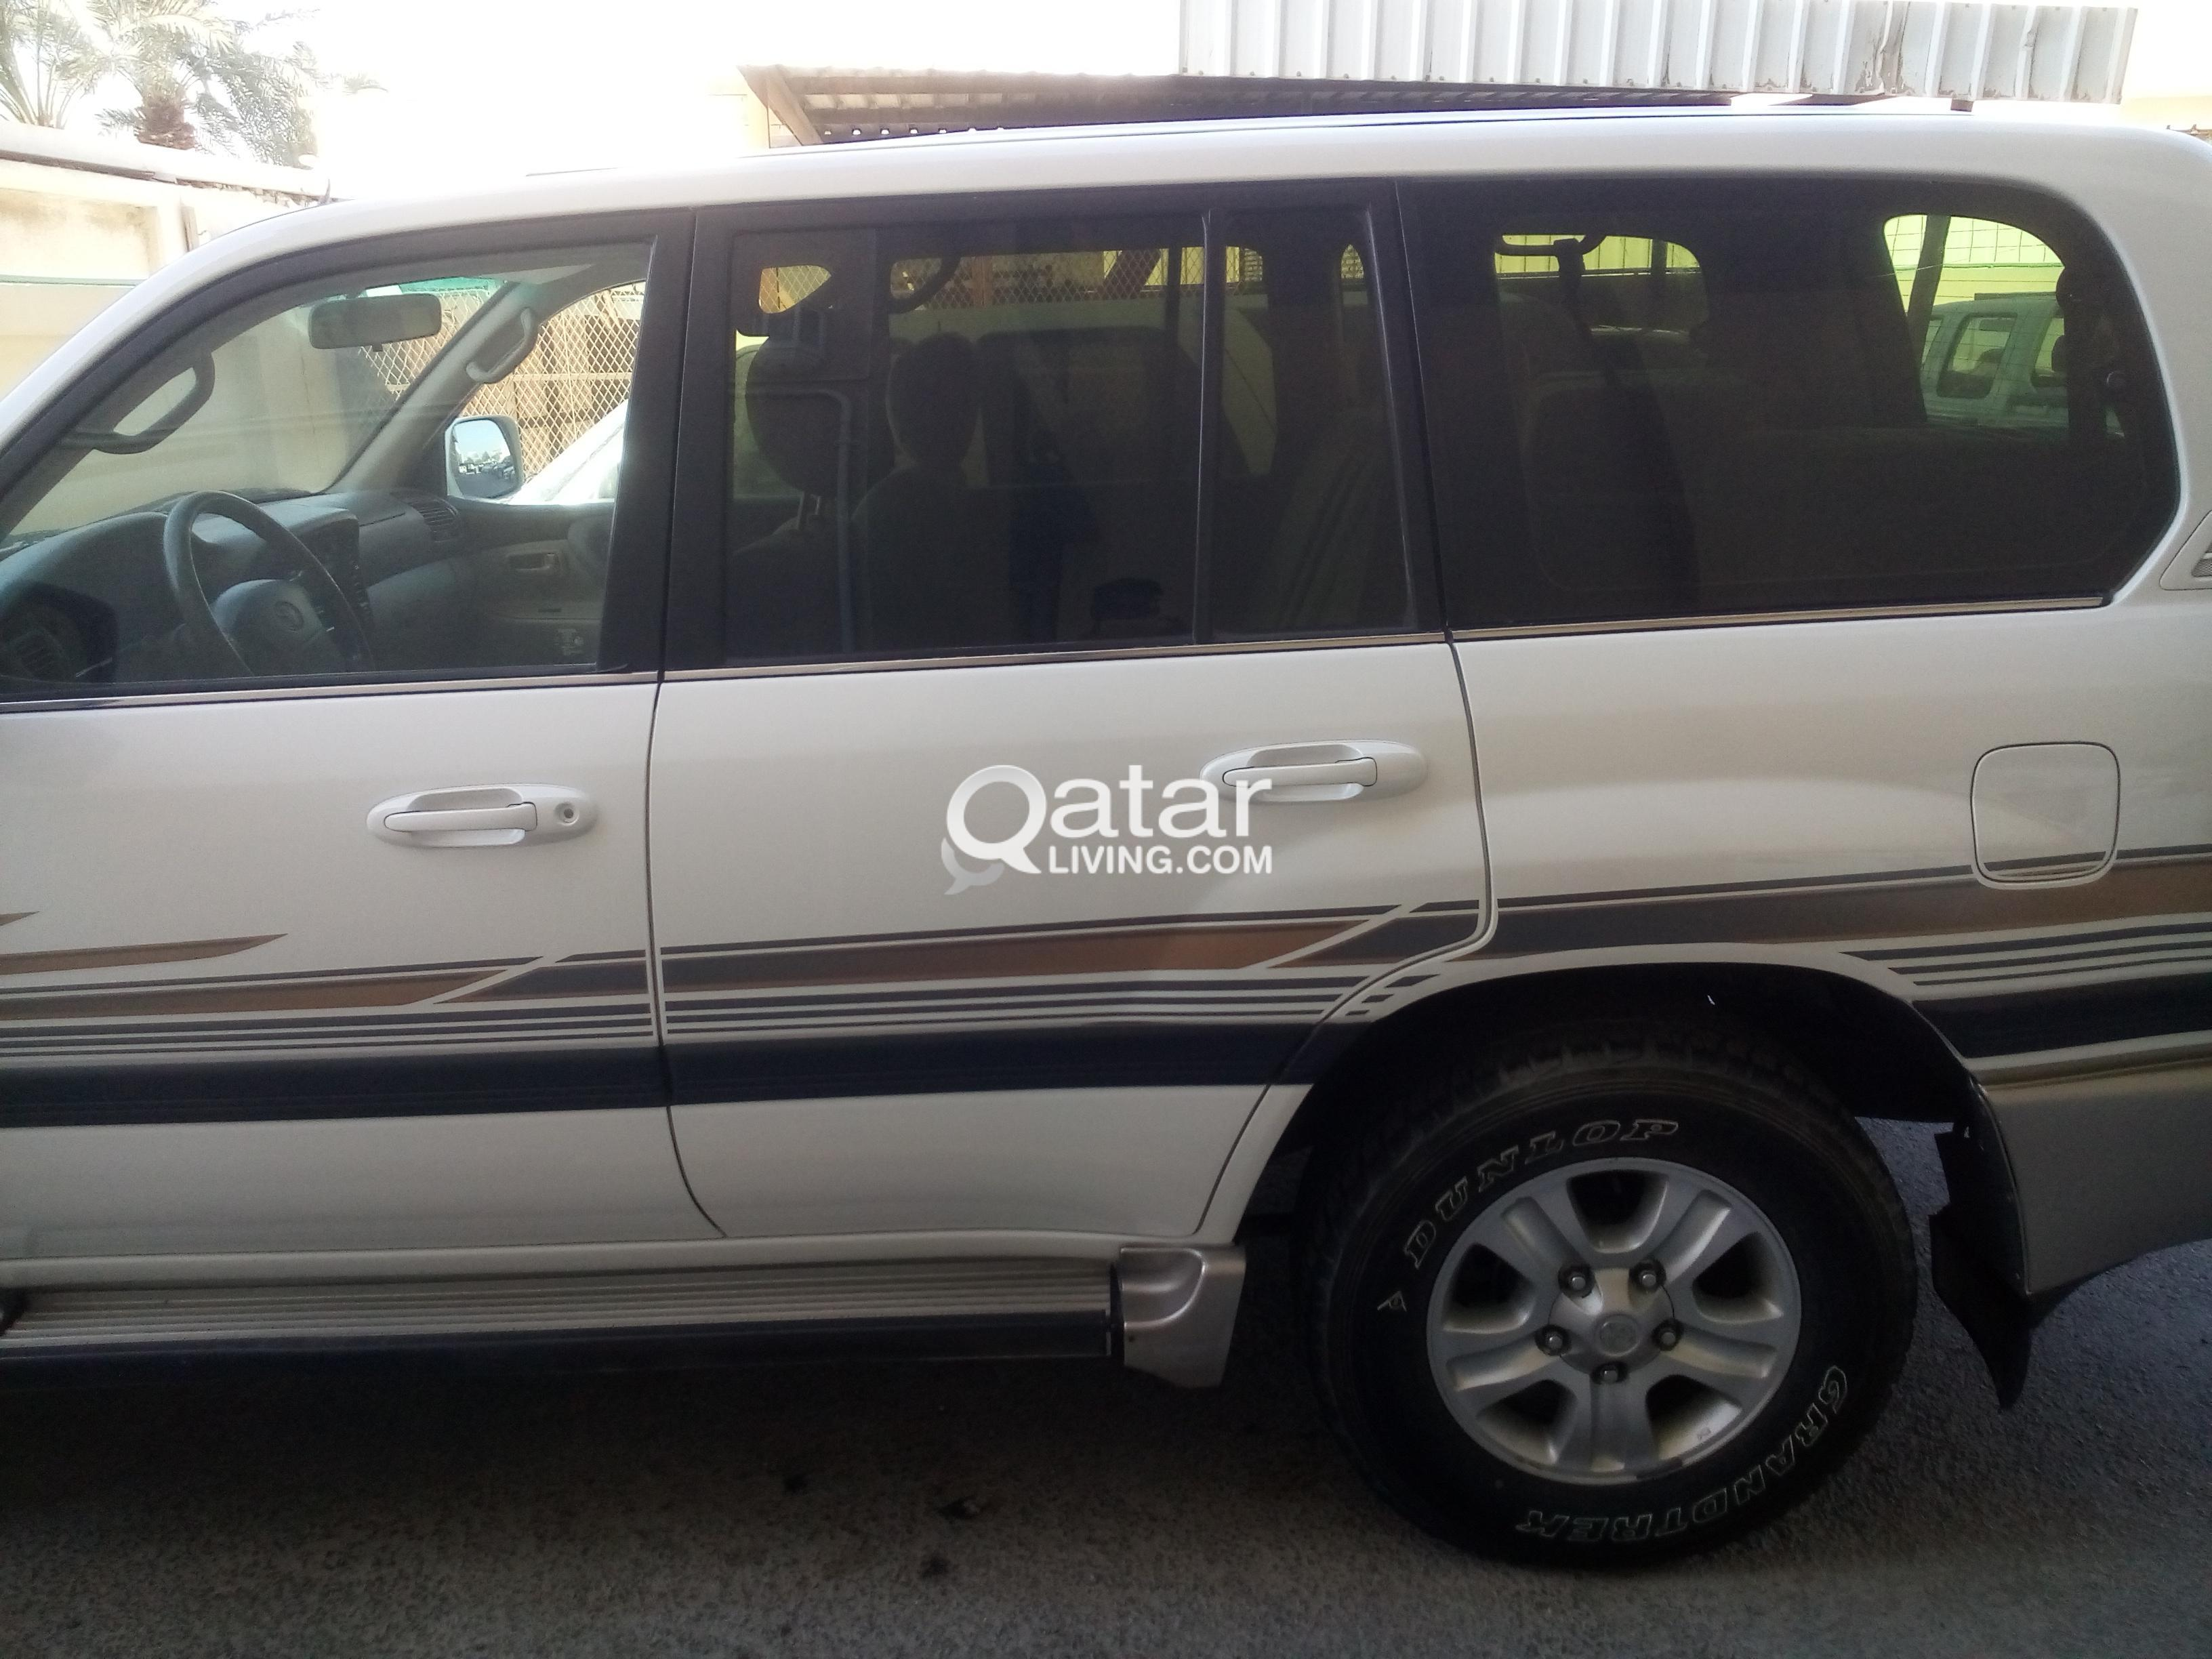 Toyota Land Cruiser 2001 For Sale Qatar Living Title